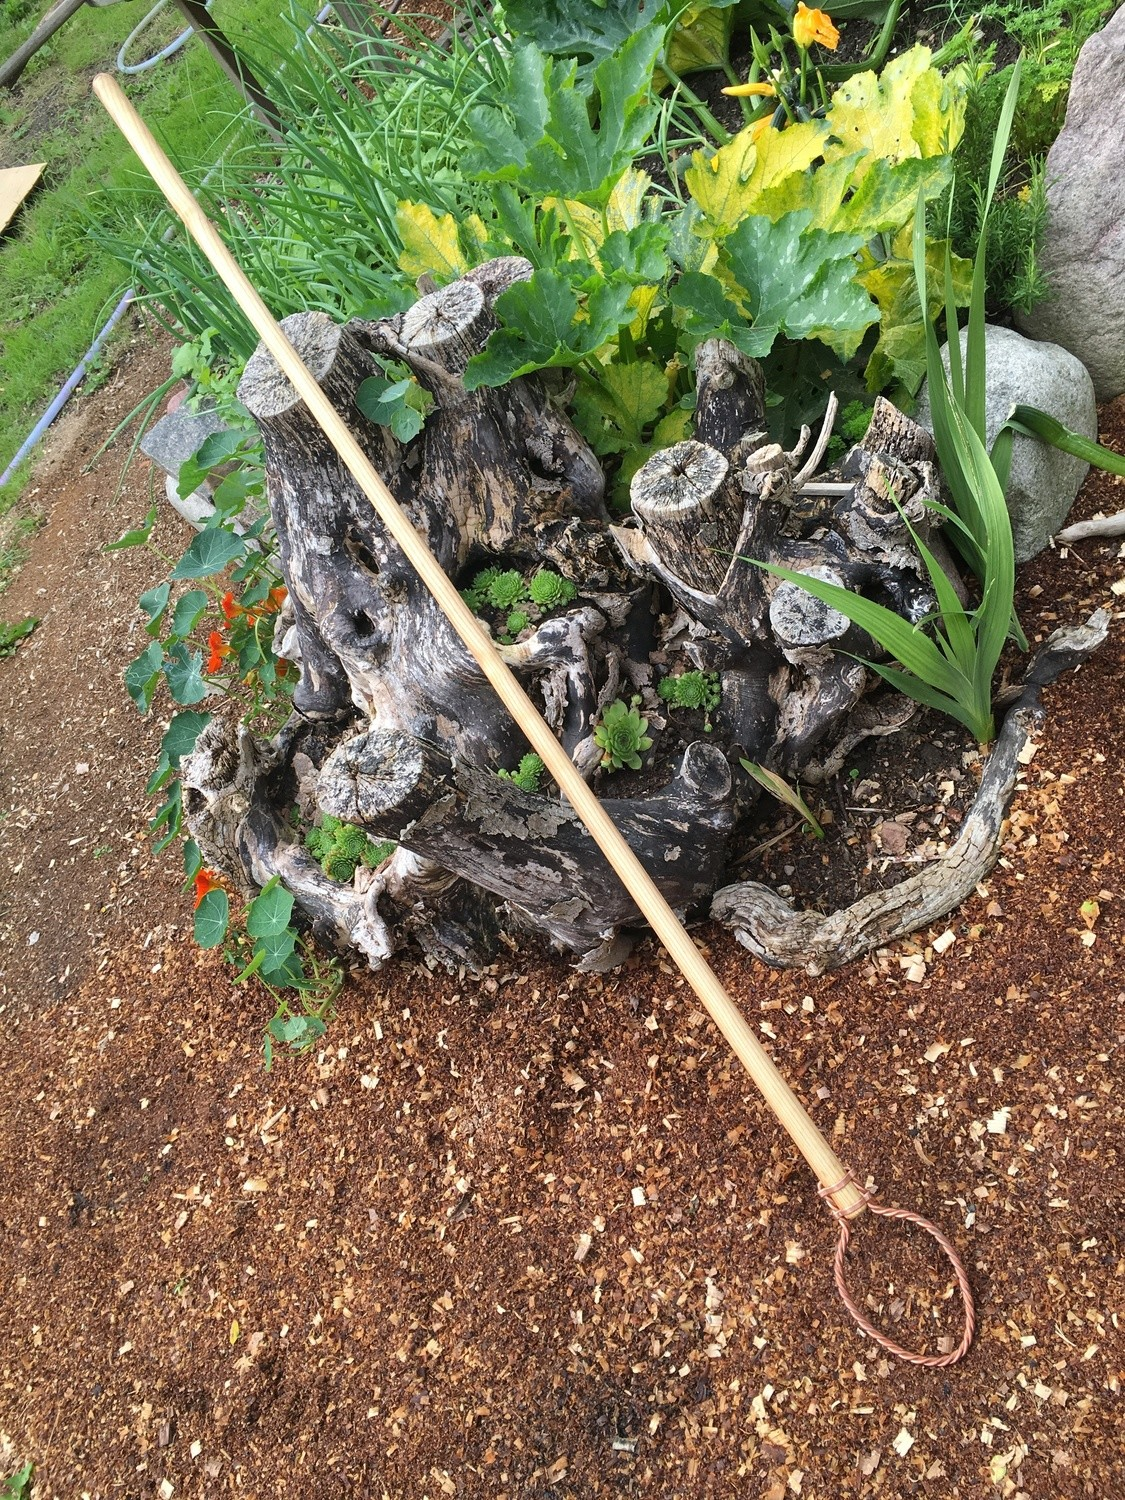 Gardenscepter, long shaft